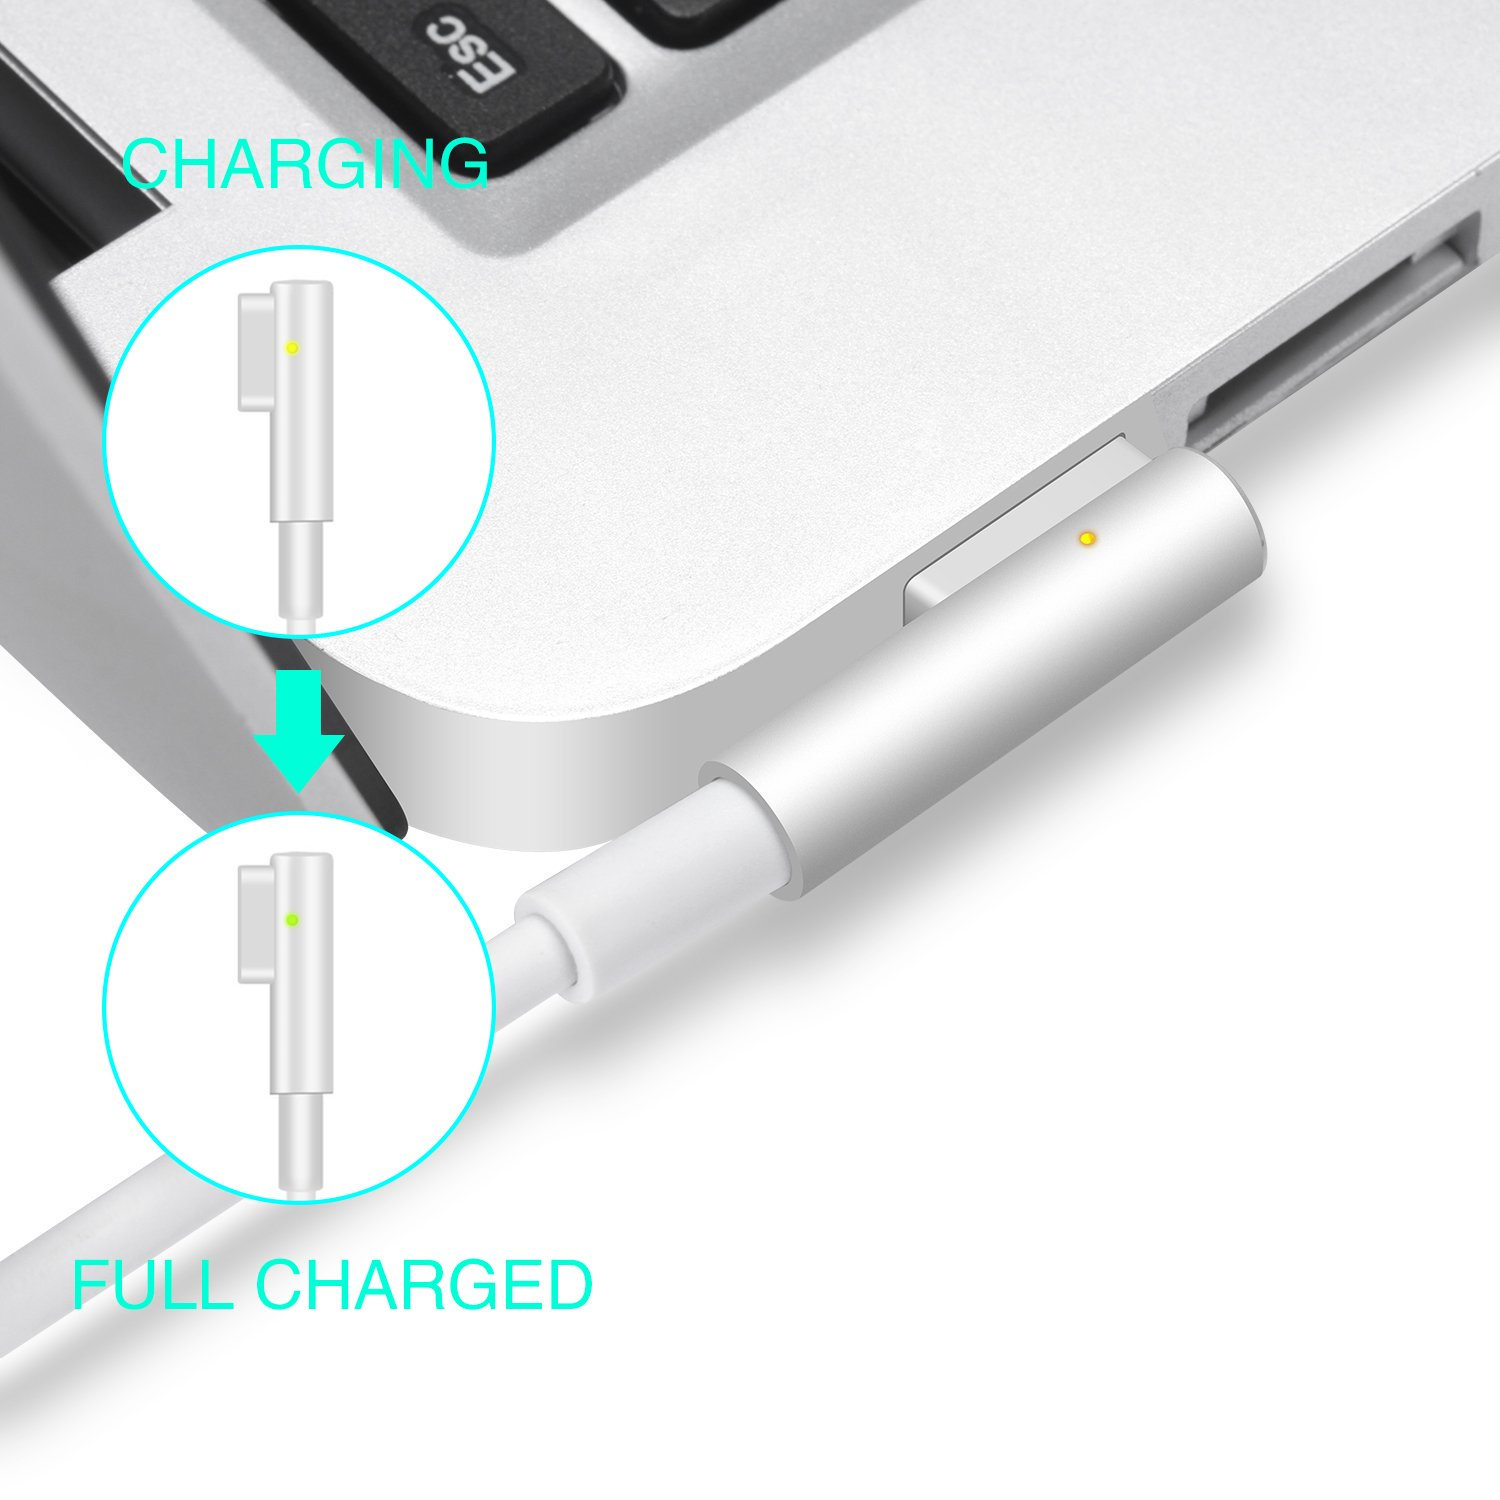 MacBook Pro Charger, Kakivan Mac Charger 85w Magsafe Power Adapter Cord with L-Tip, MacBook Charger 85w Replacement for MacBook Pro 15/17 Inch (Mid2012 Before) by Kakivan (Image #5)